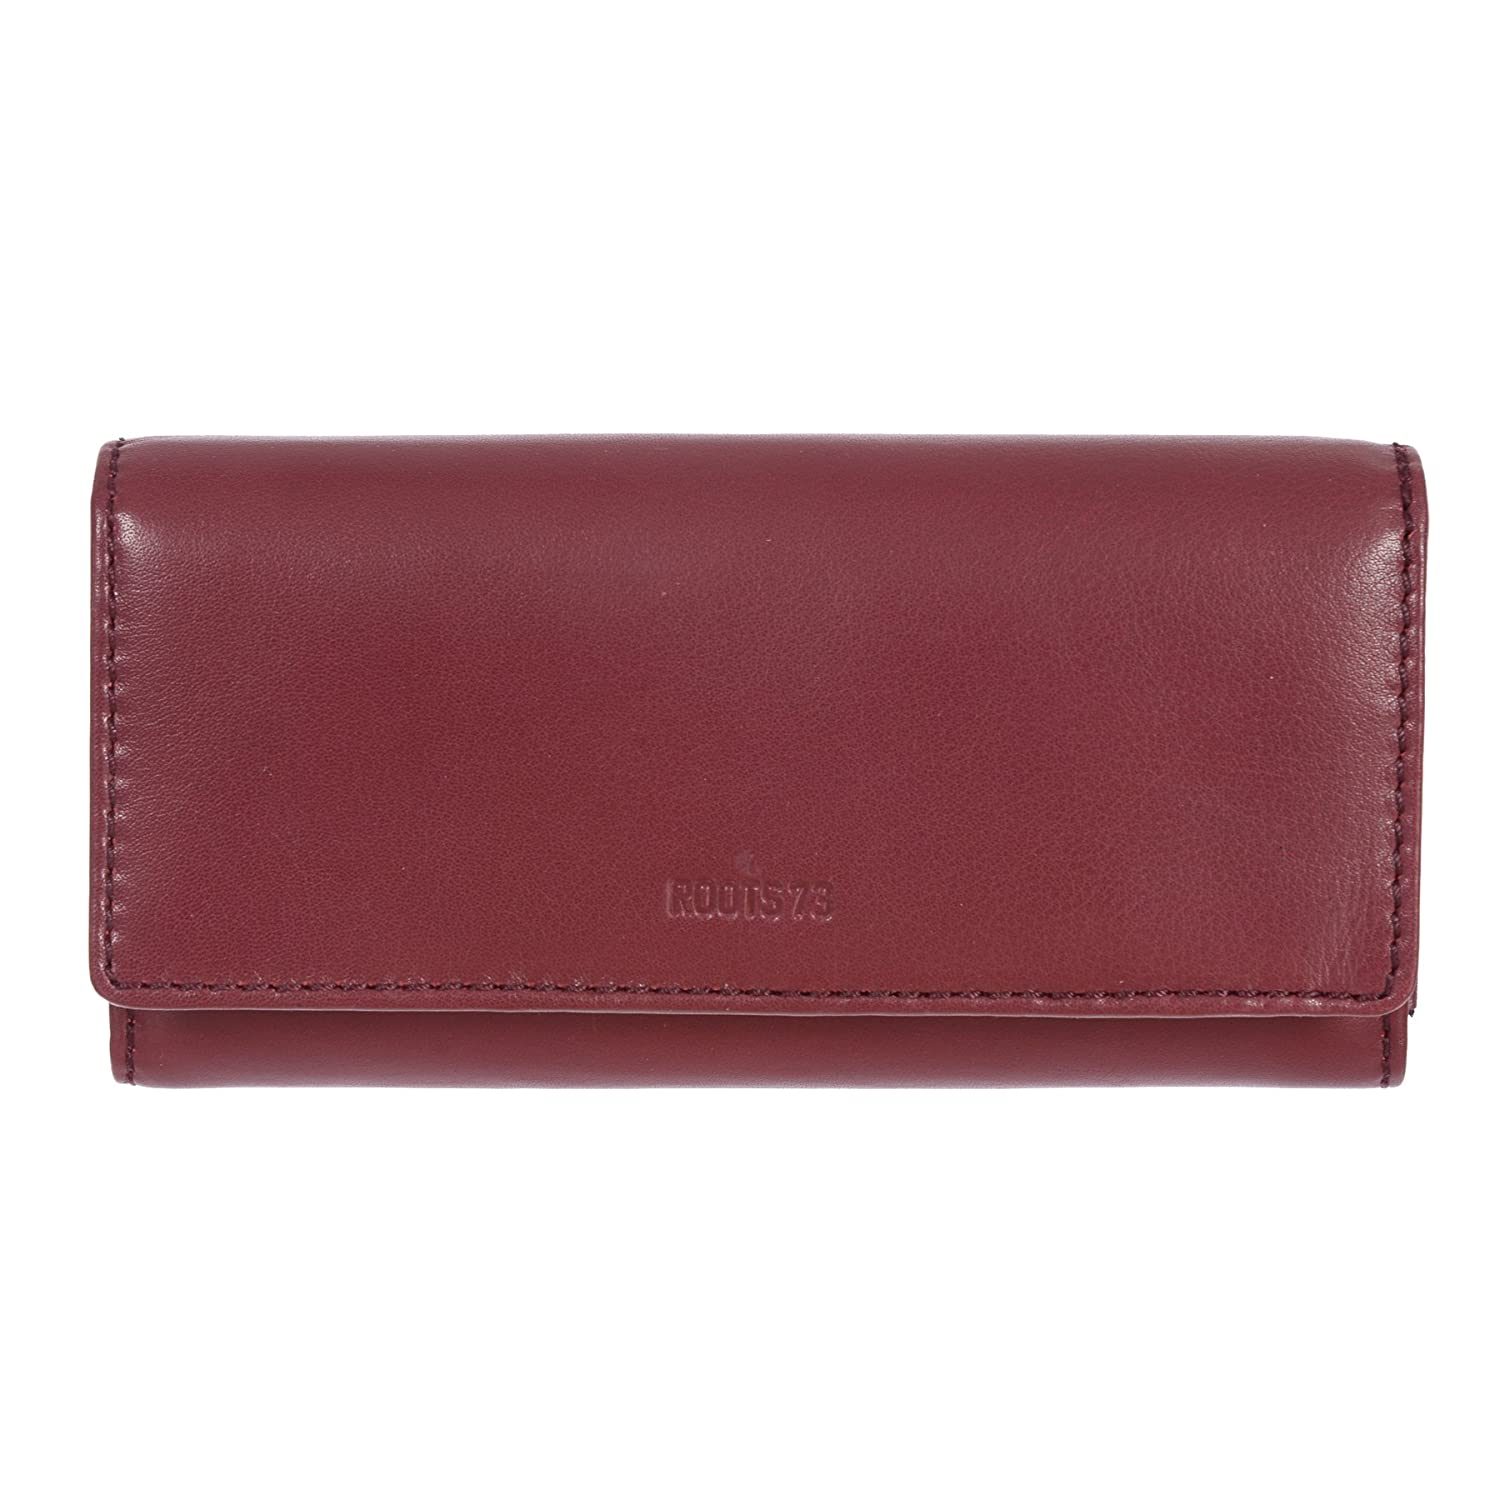 Roots 73 Women's Leather Clutch and Checkbook Wallet (Black) CBMC_R4564_1_BLK